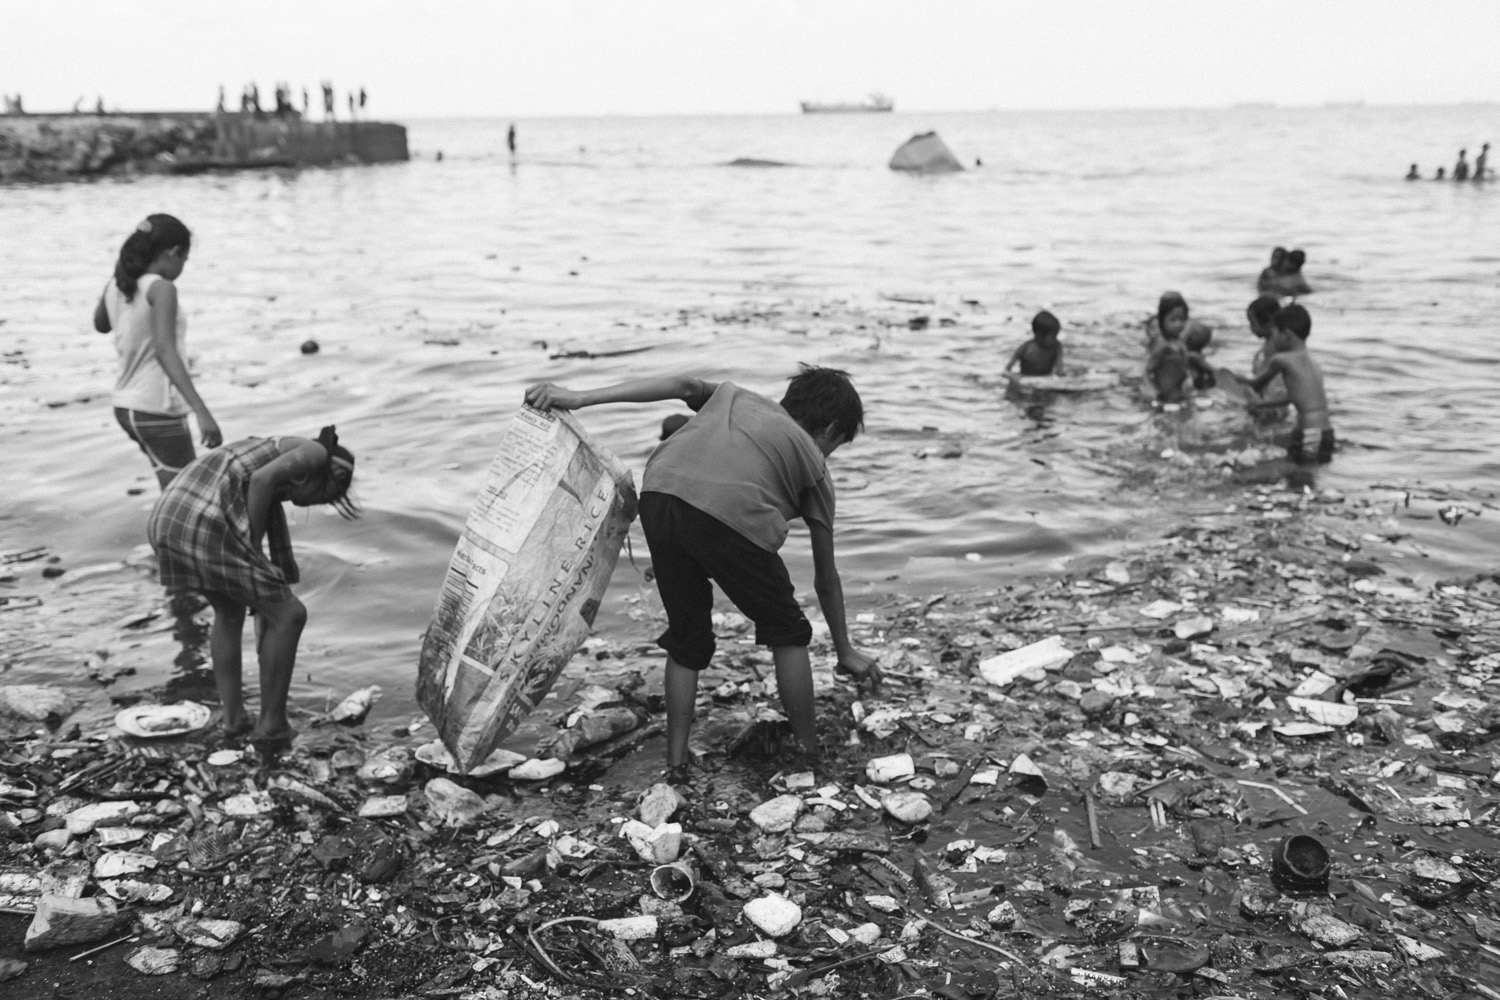 Children looking for plastic in Tondo, Manila - Philippines